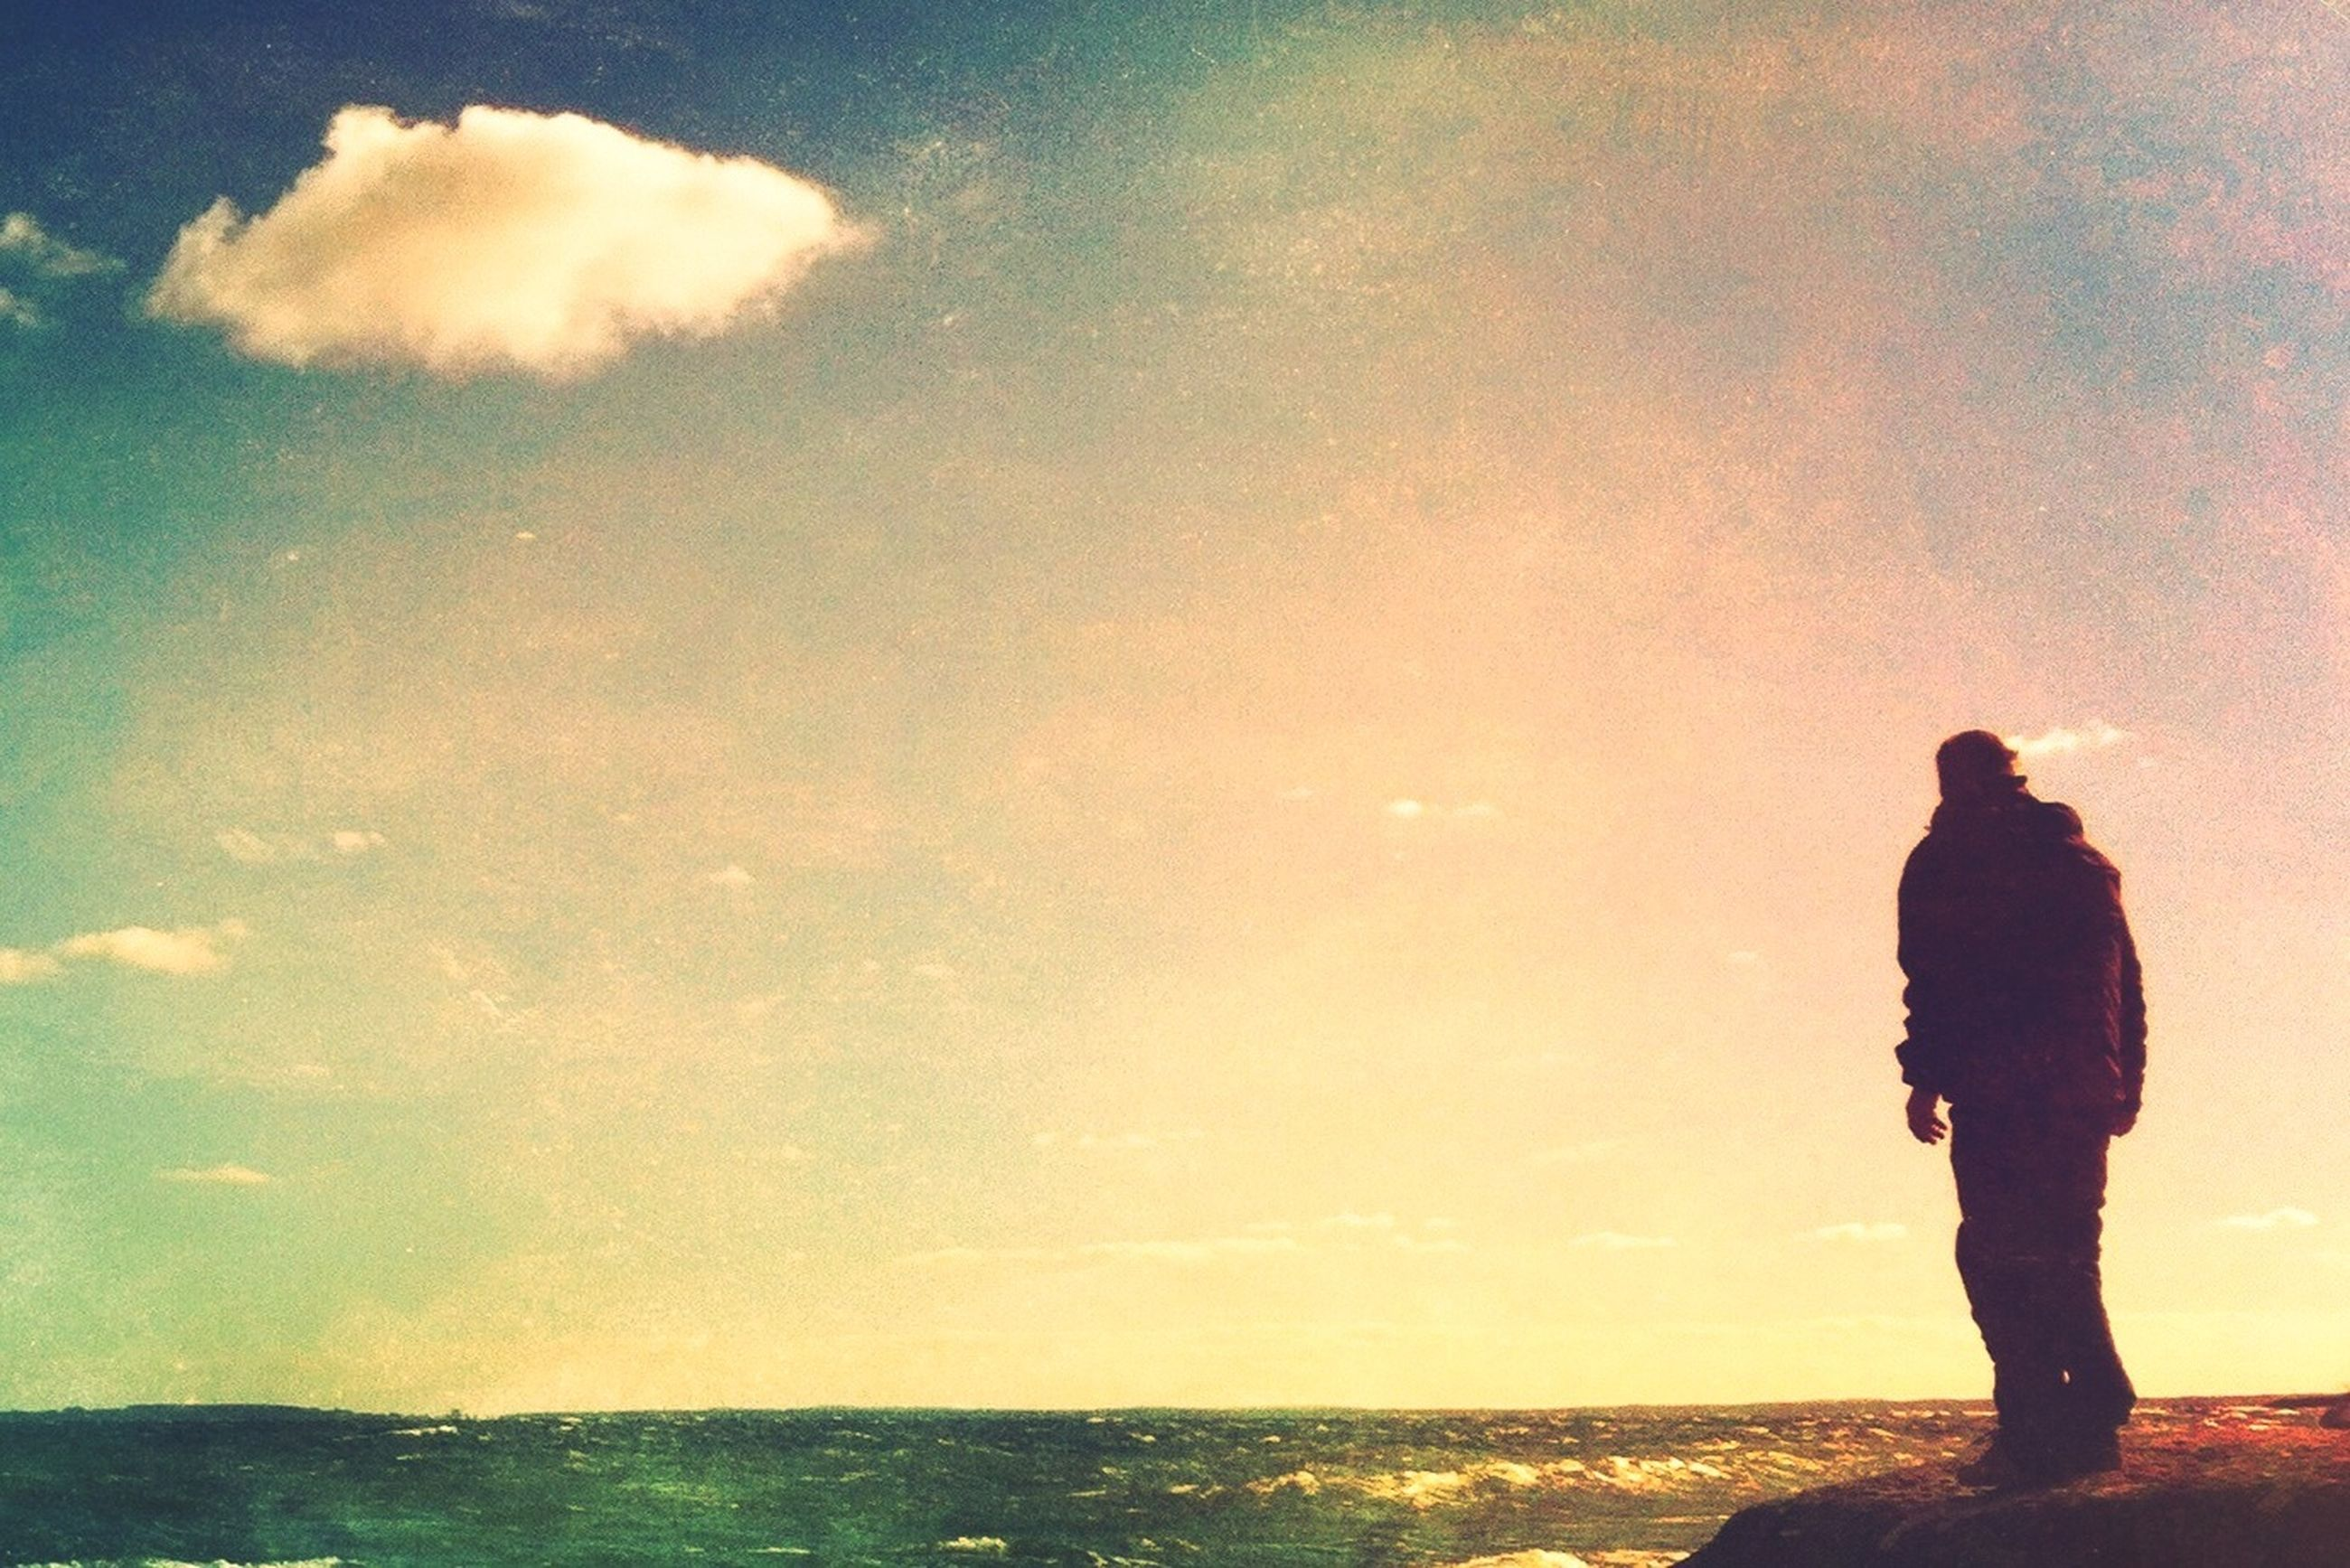 sea, horizon over water, water, sky, silhouette, standing, leisure activity, lifestyles, tranquil scene, tranquility, beach, scenics, beauty in nature, rear view, shore, nature, sunset, full length